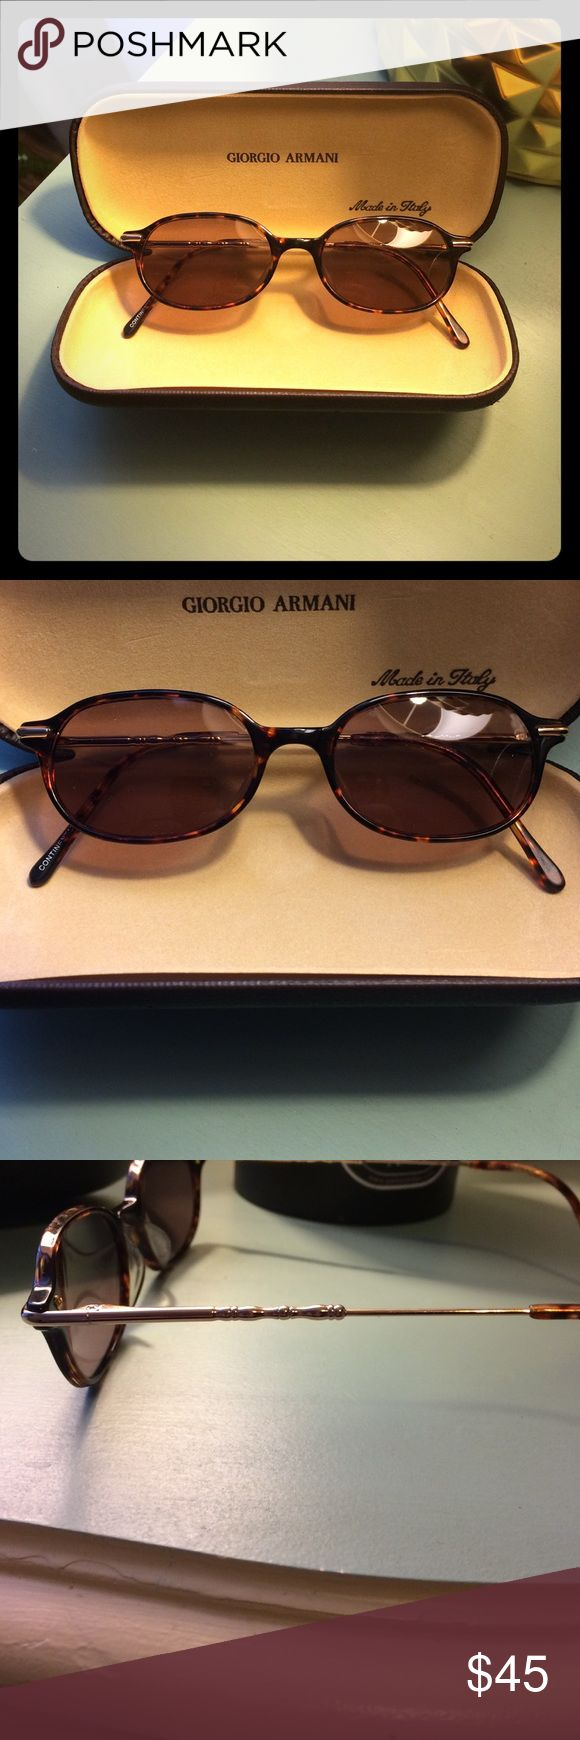 Giorgio Armani Sunglasses Authentic Giorgio Armani Sunglasses-Cute Tortoise and Gold Frames- Authentic- Purchased From a Eye Care Center But Does Not Have Prescription Lenses- Outside of Case Is Not Perfect But Glasses Are! No Scratches Giorgio Armani Accessories Sunglasses